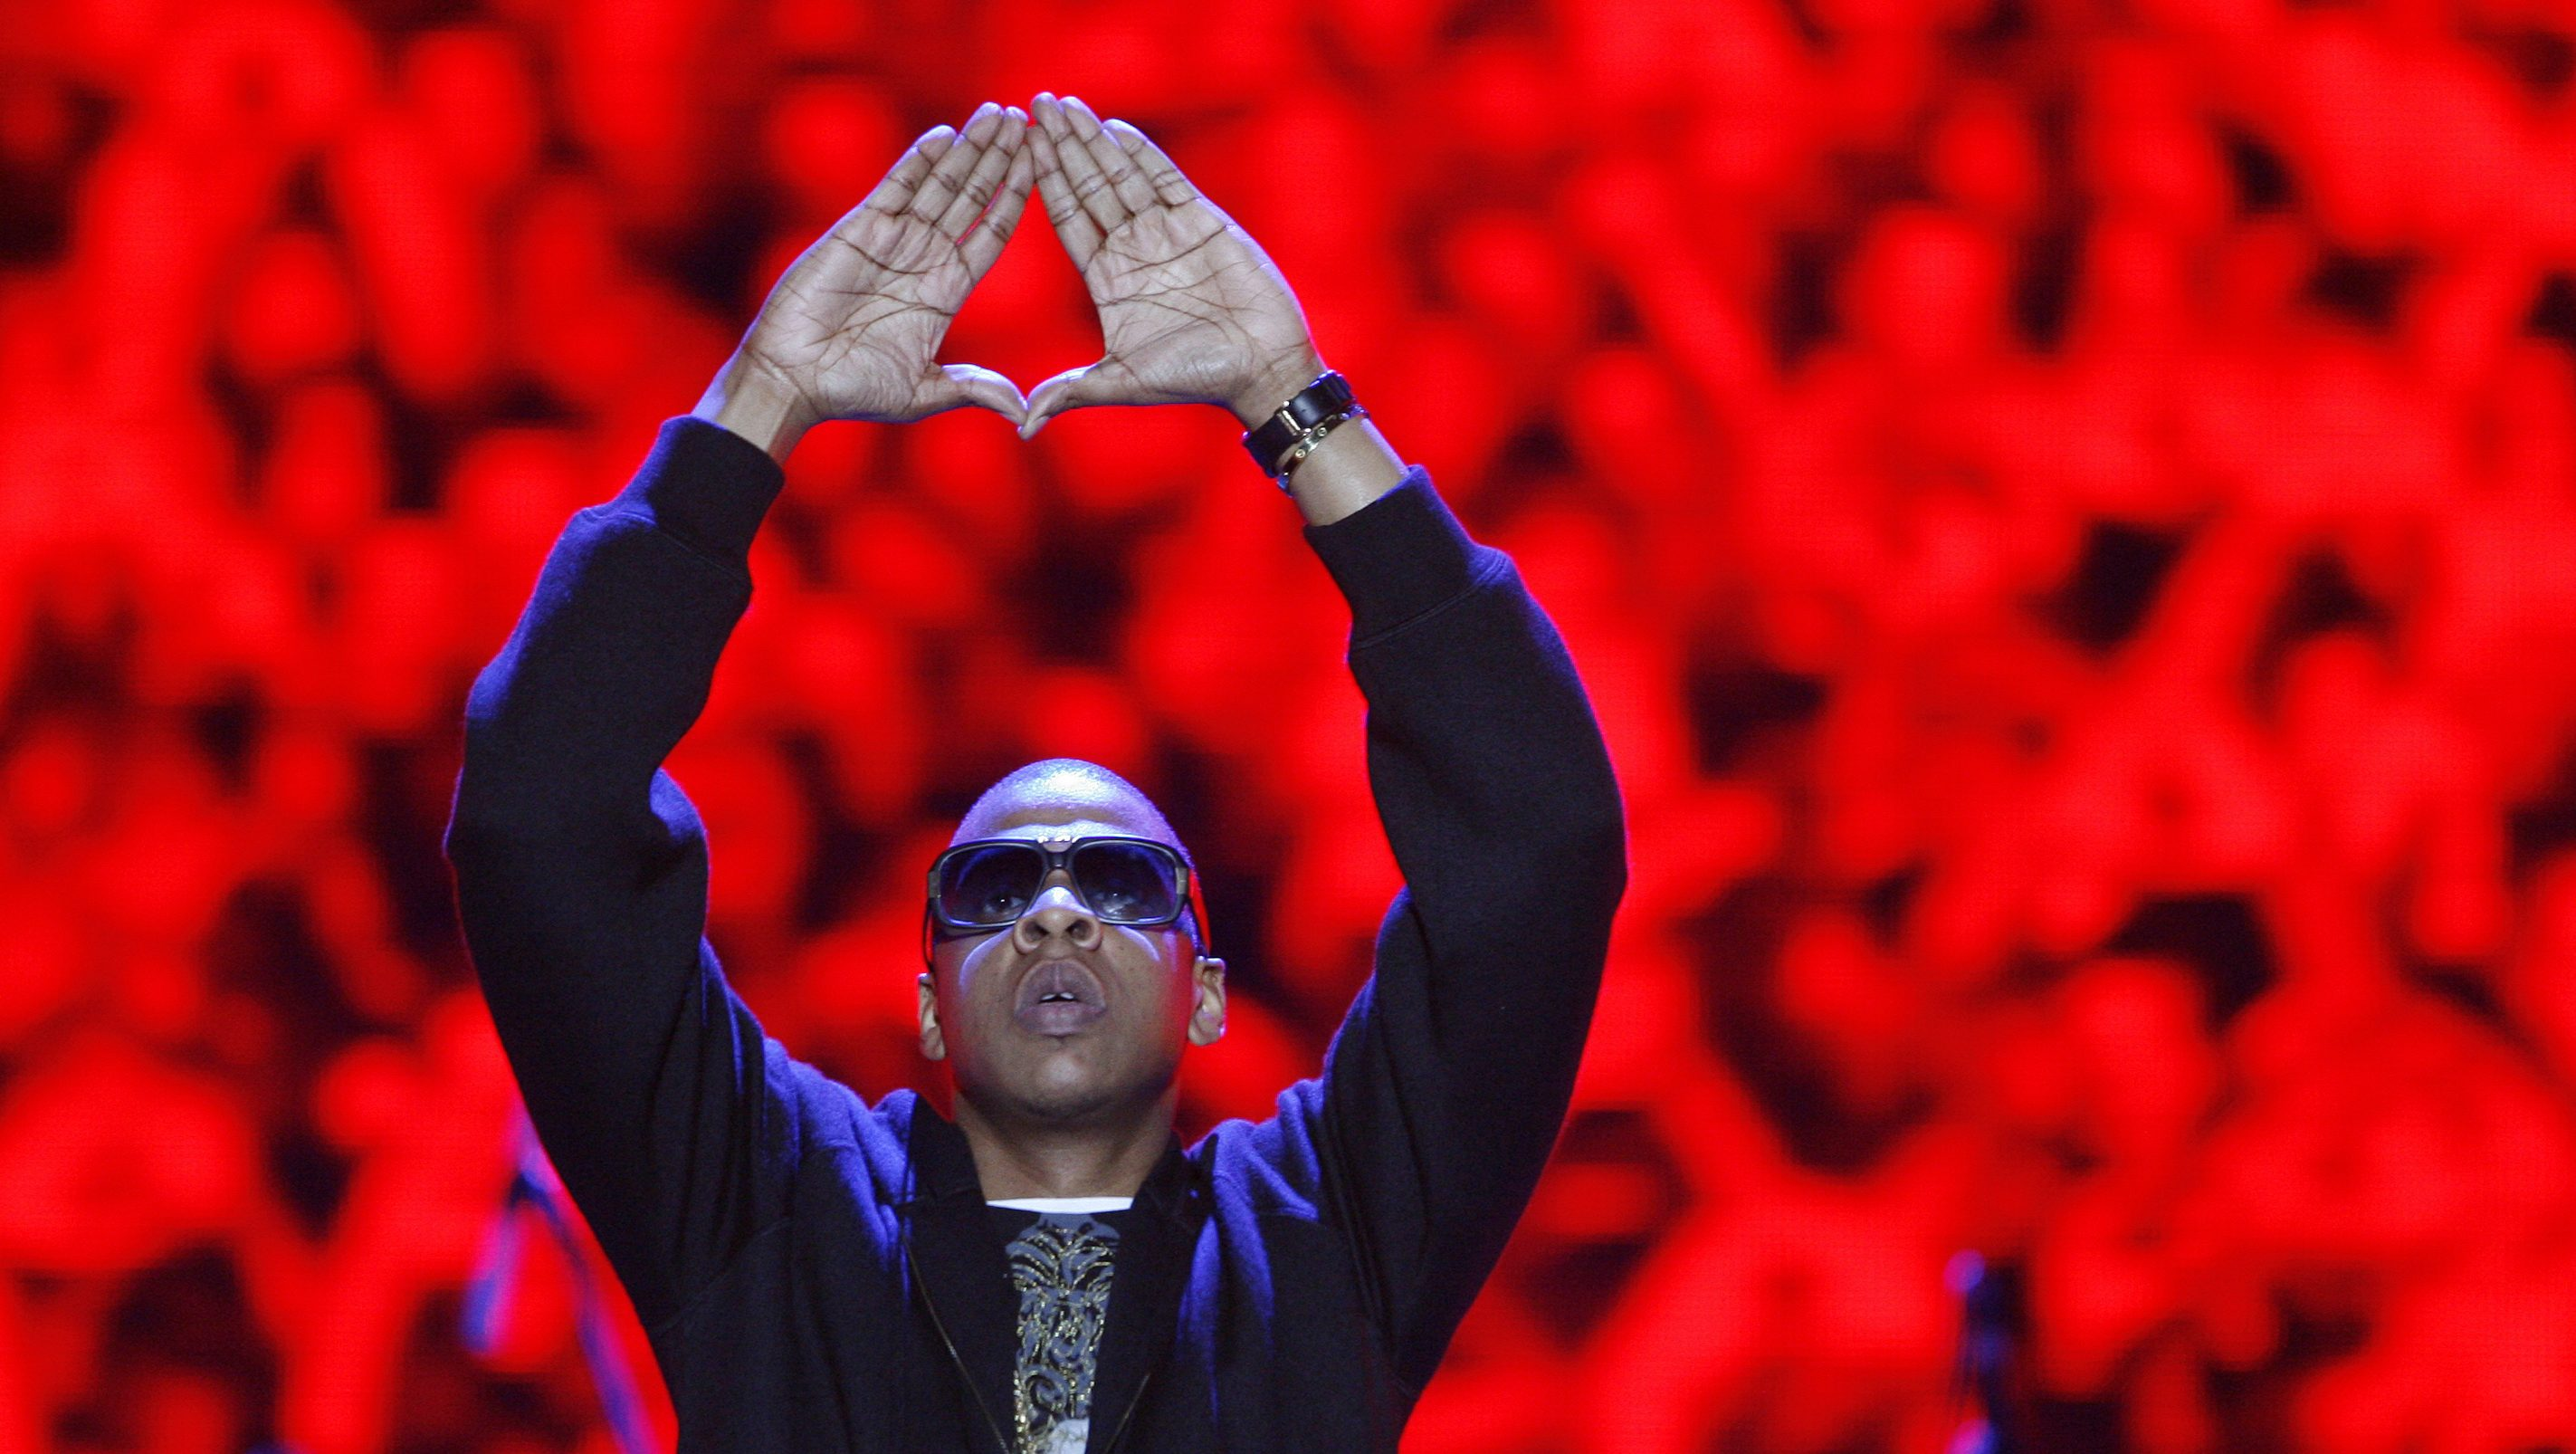 American rapper Jay-Z performs during the Heineken Open'er Festival in Gdynia, northern Poland, July 5, 2008. Picture taken July 5, 2008.  REUTERS/Kacper Pempel (POLAND) - RTX7OU1